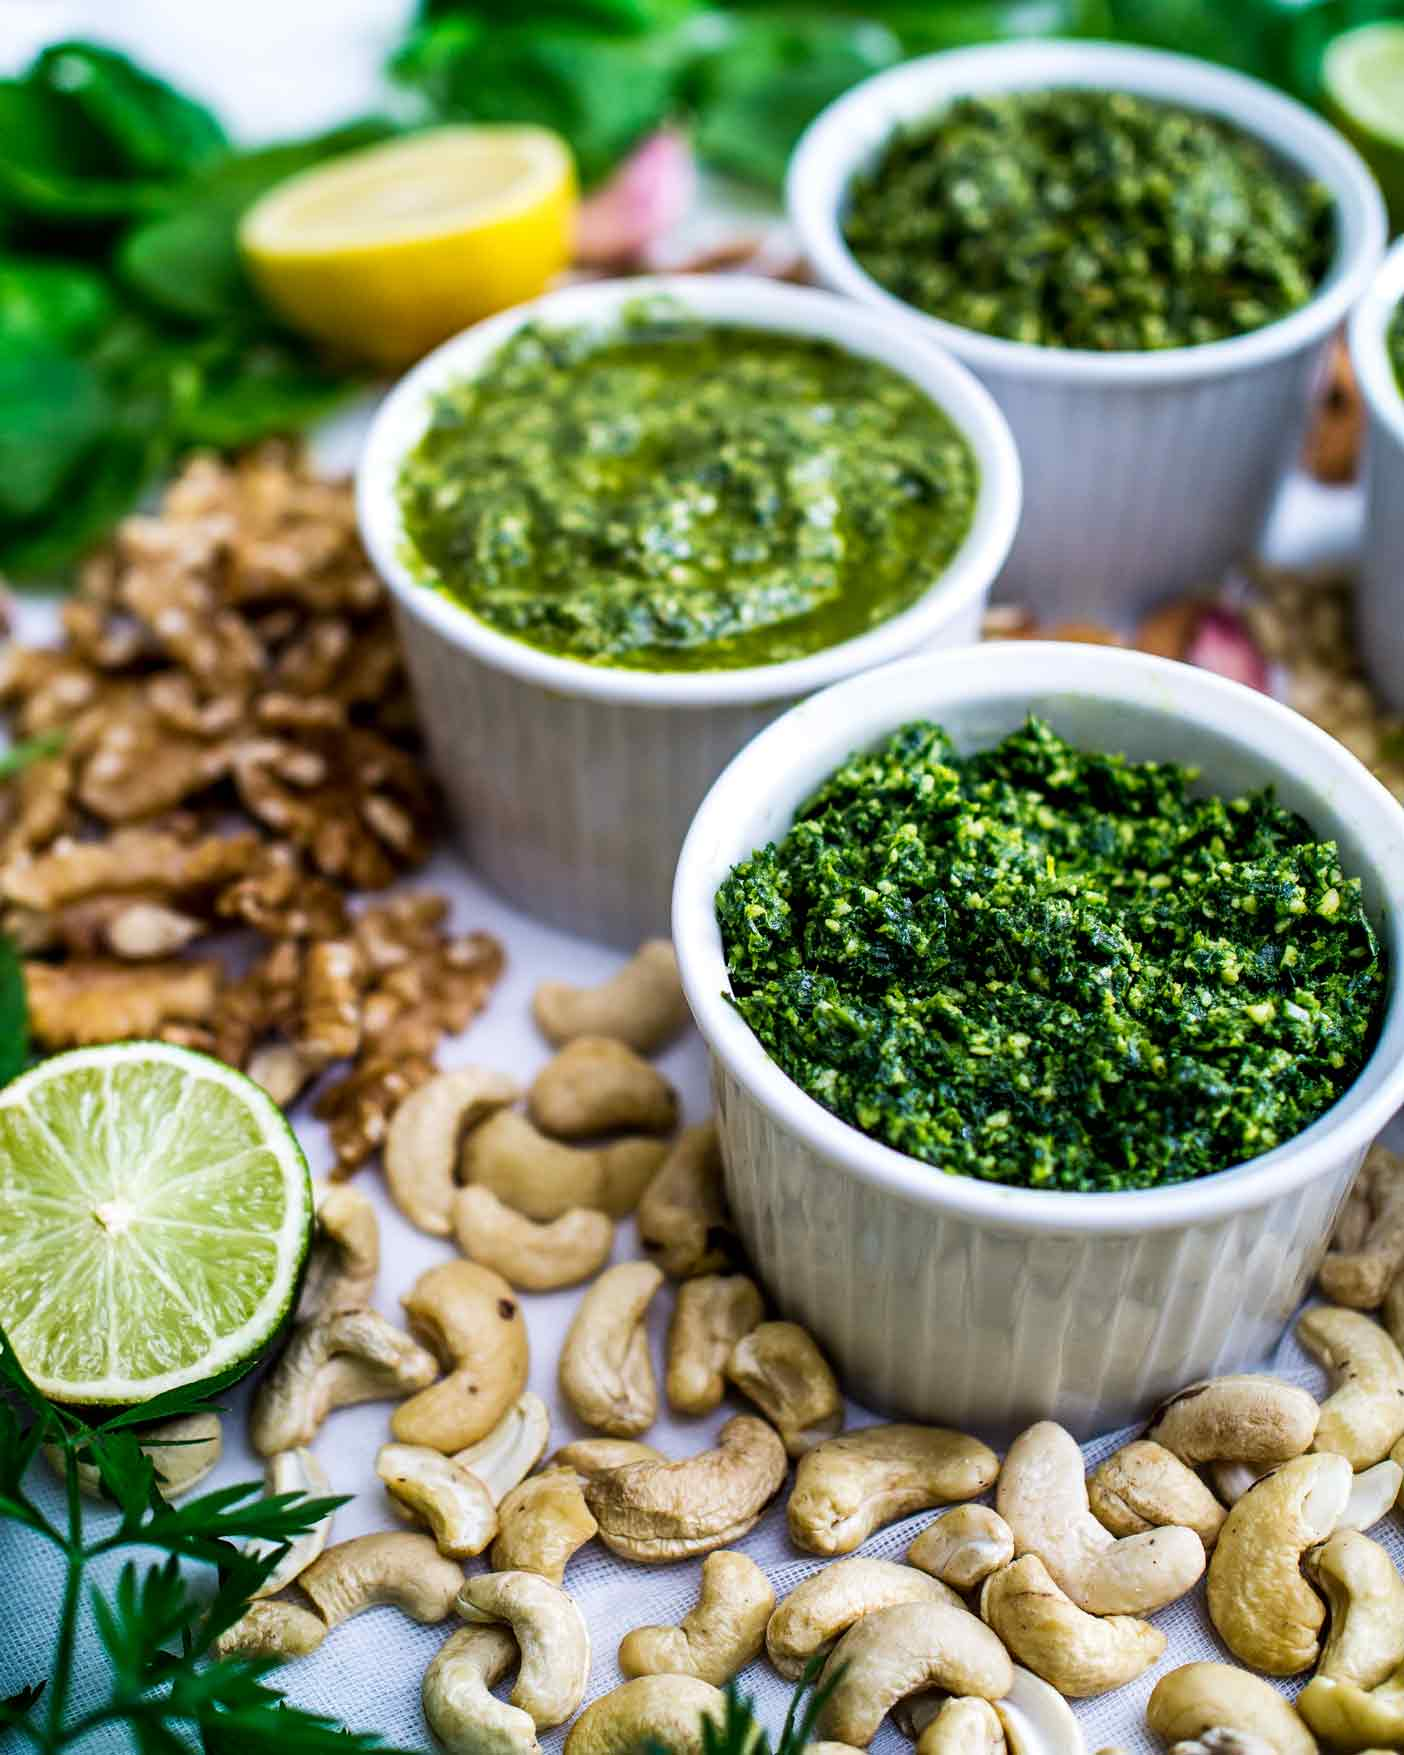 How to make any vegan pesto - adaptable so choose your herb, nut, citrus and oil! Click through for full post!   #infographic #graphic #flowchart #recipe #recipes #dips #homemade #healthy #basil #dairyfree #gluten #free #easy #vegetarian #spinach #mint #cashew #green #walnut #almond #vegan #how #make